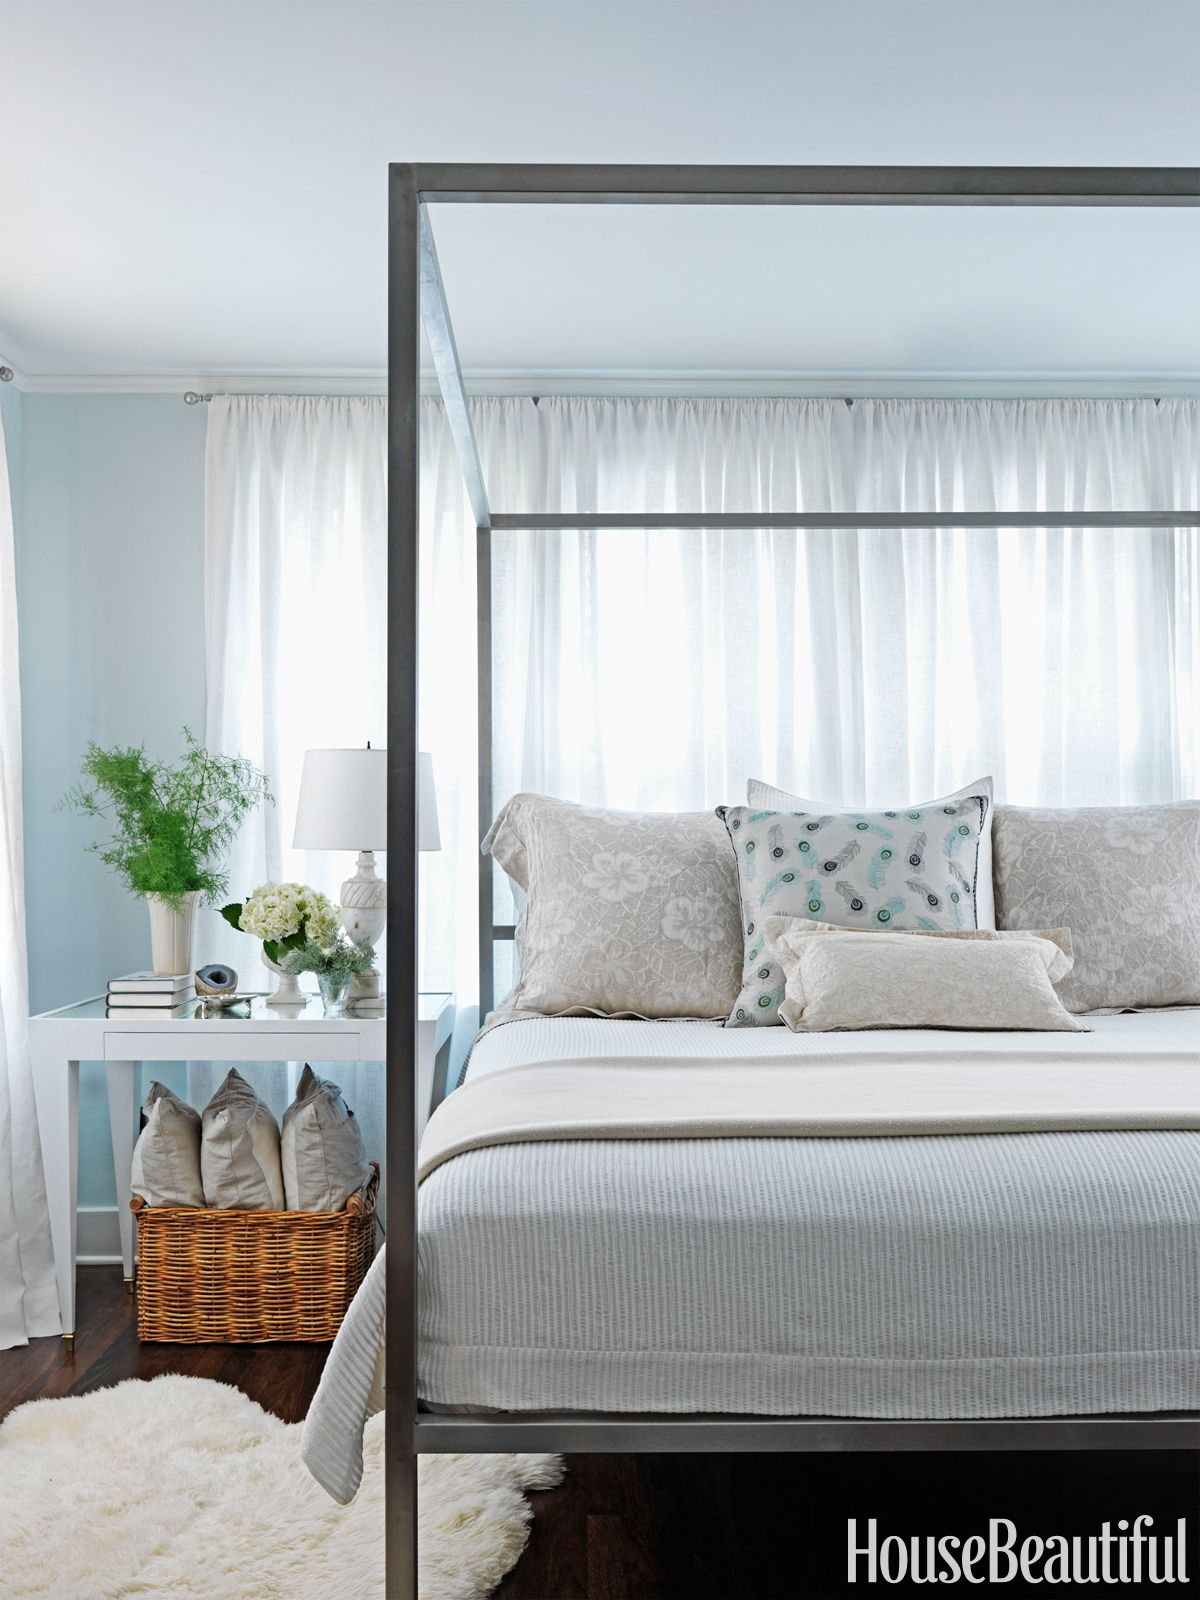 . 7 Quick Ways to Organize Your Bedroom This Spring